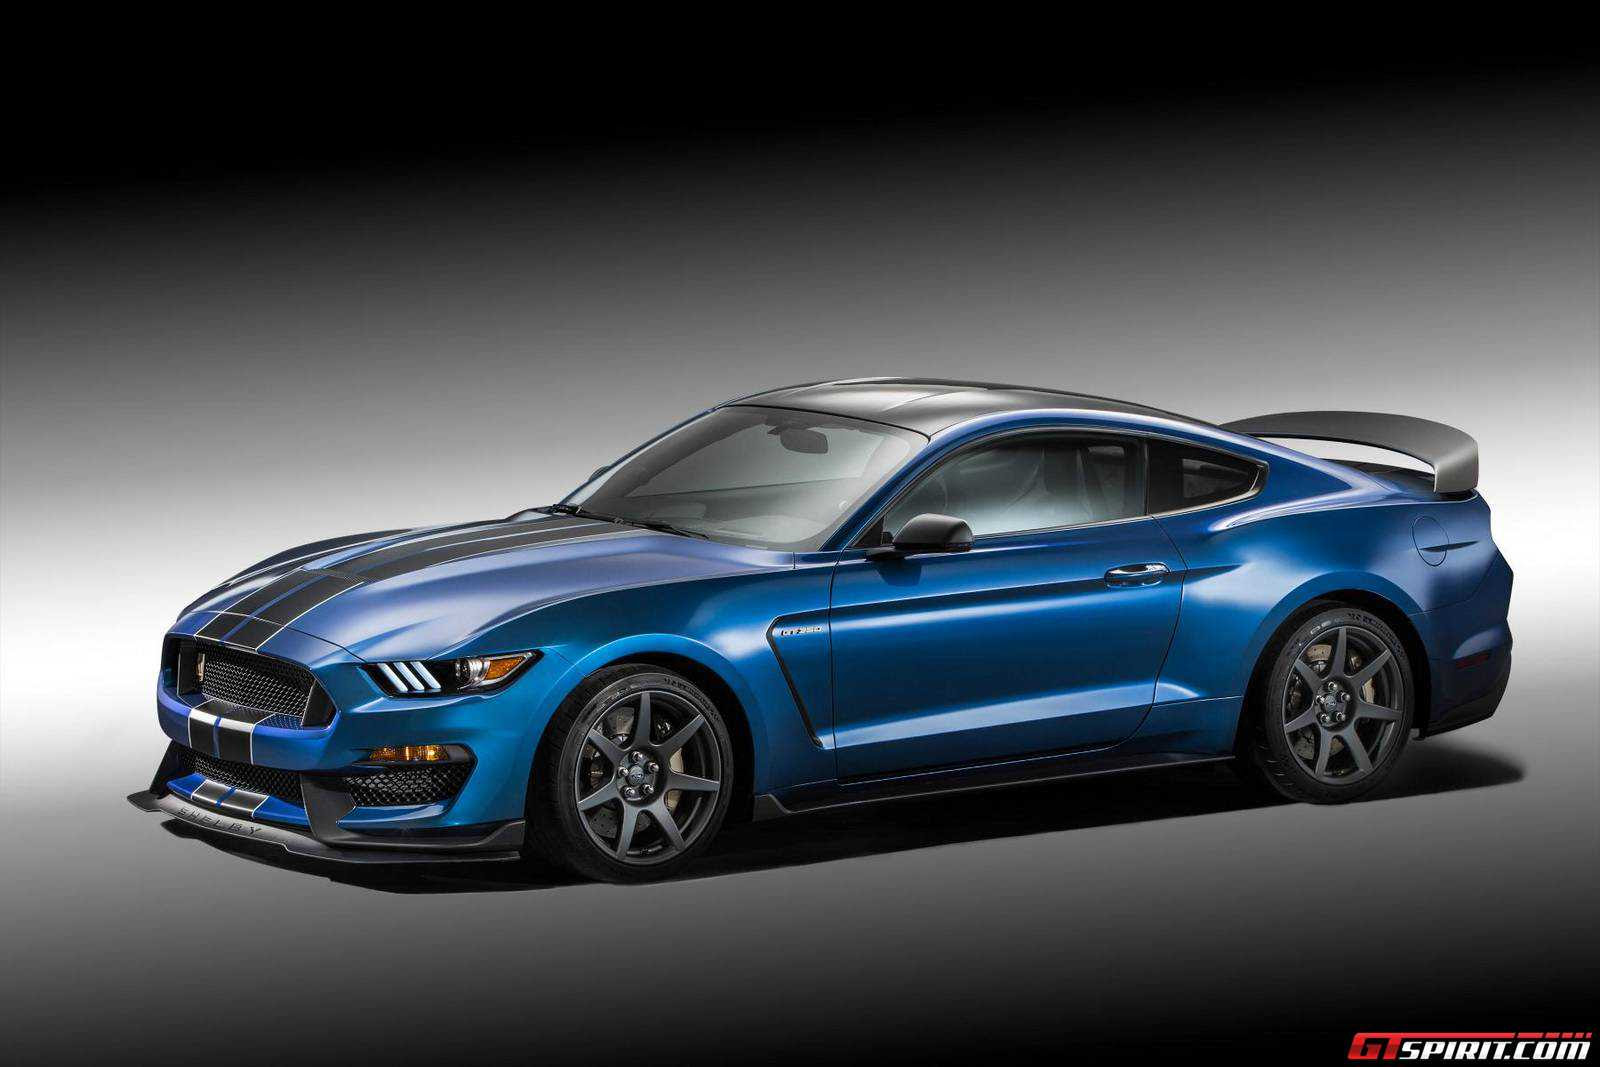 ... Car News Ford Shelby Mustang GT350 and GT350R Mustang Ordering